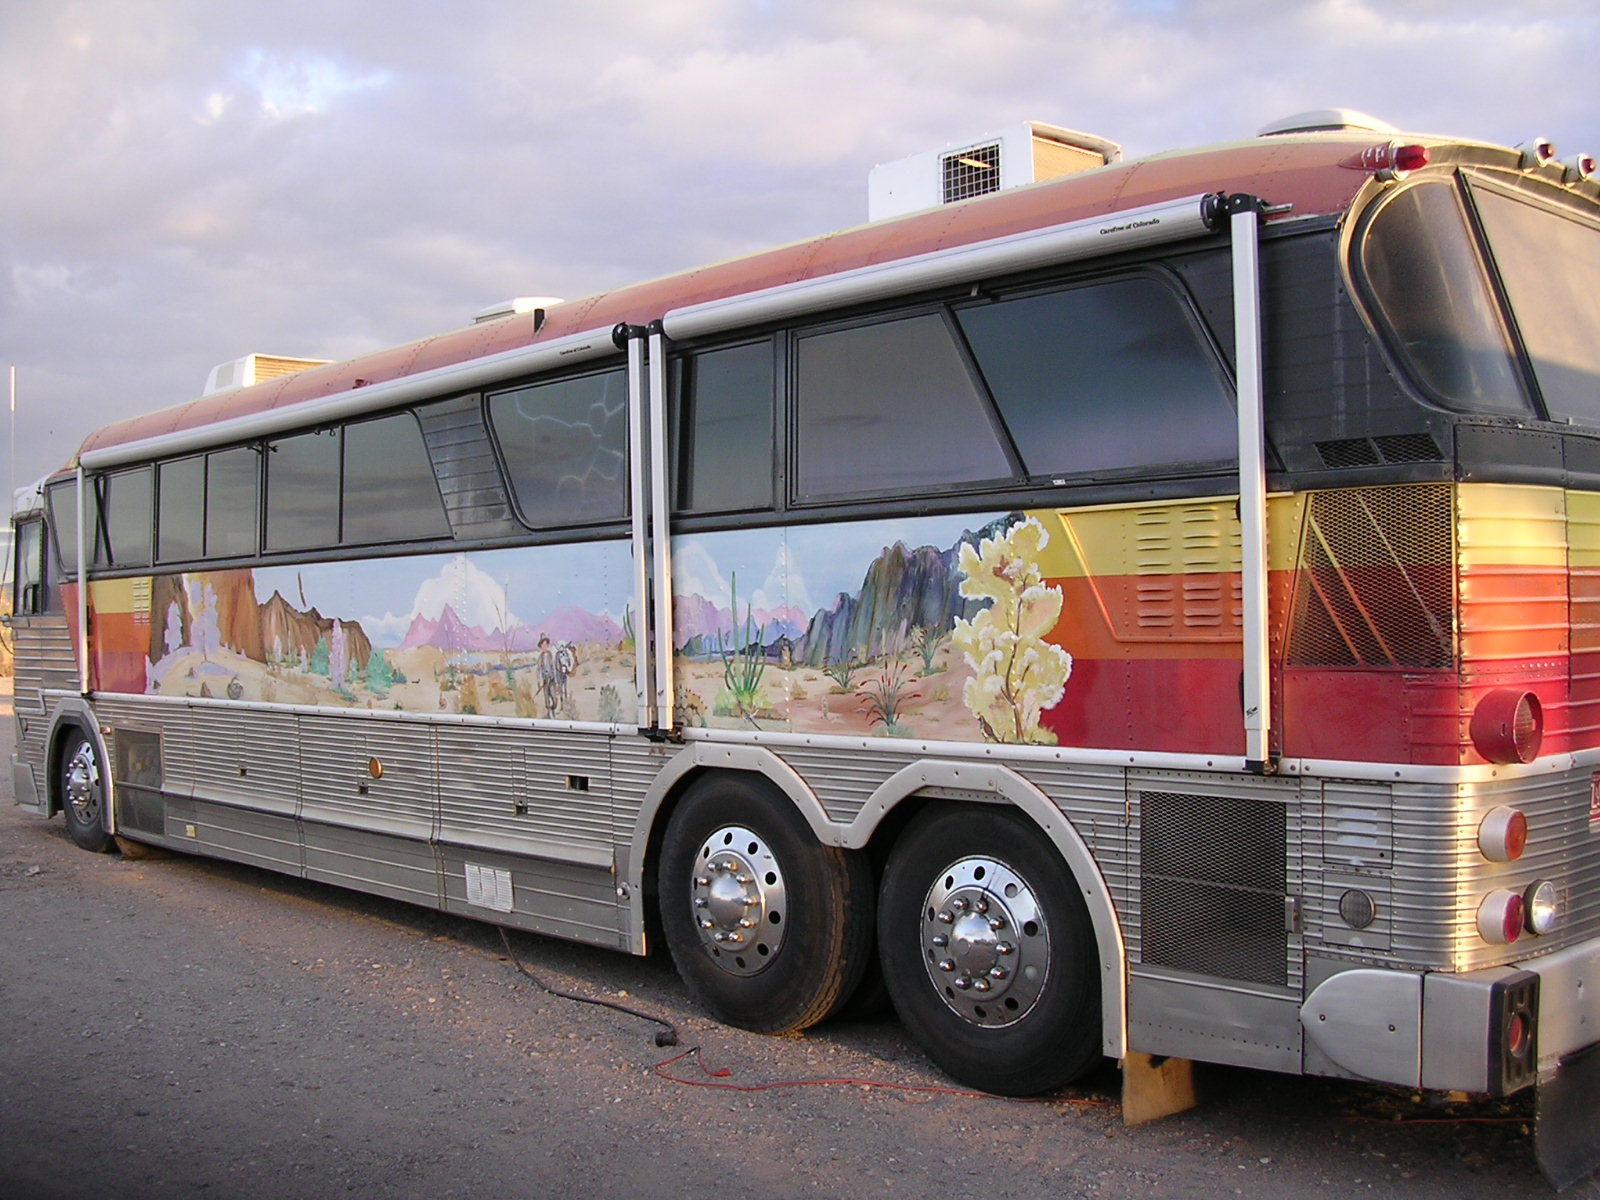 Mci buses for sale autos weblog for Used motor coach buses for sale